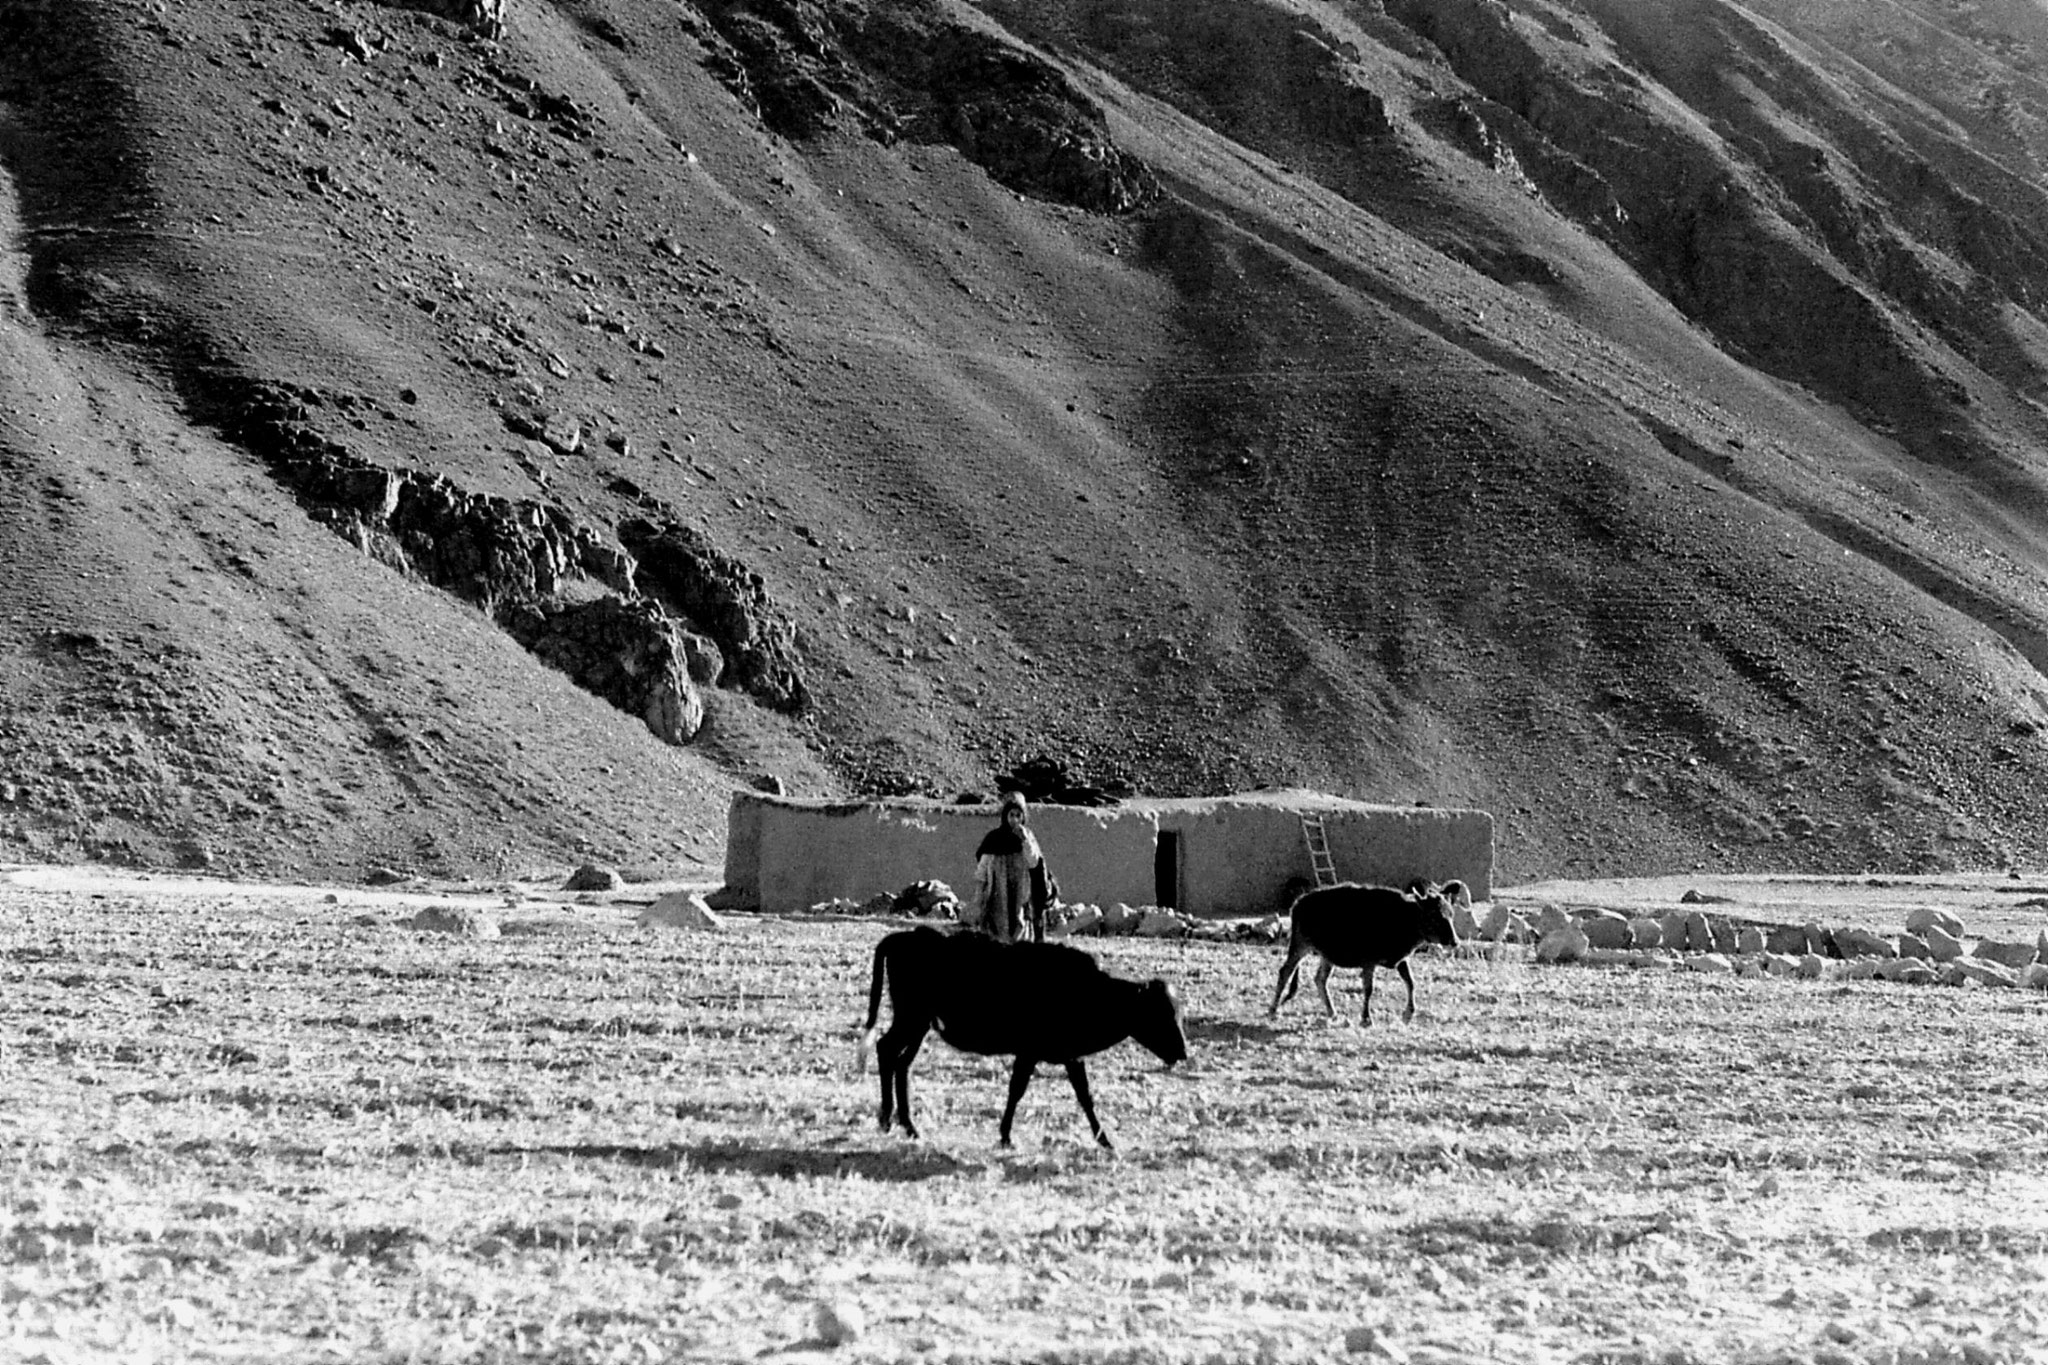 26/10/1989: 9: Barsat, woman and 2 cows in field